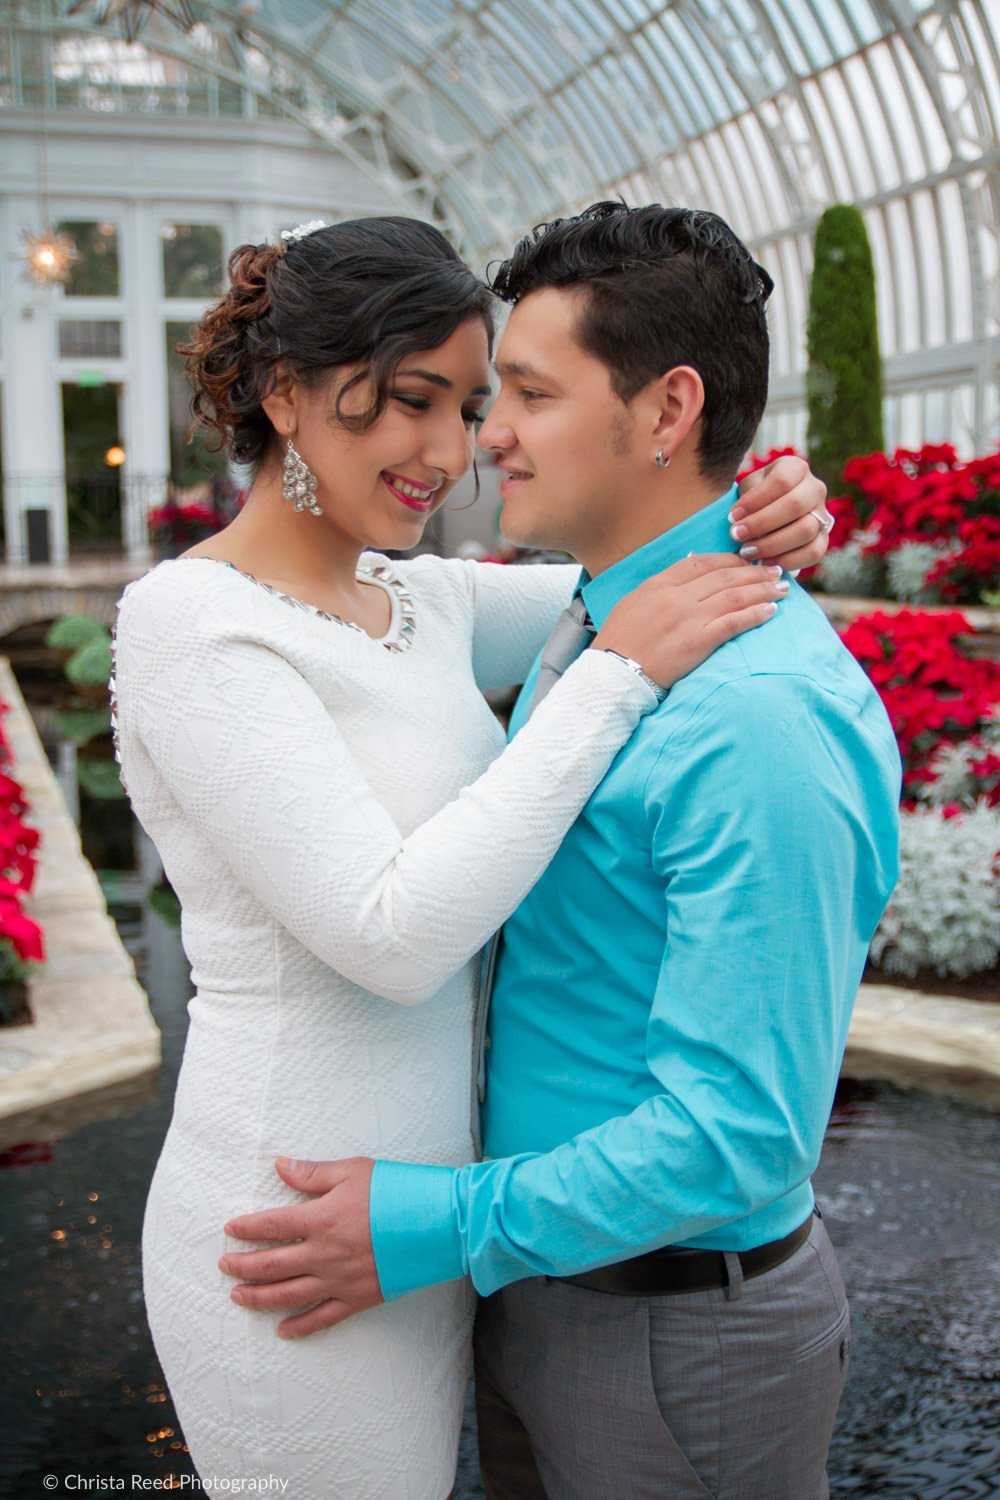 a couples poses for romantic wedding photography at como conservatory